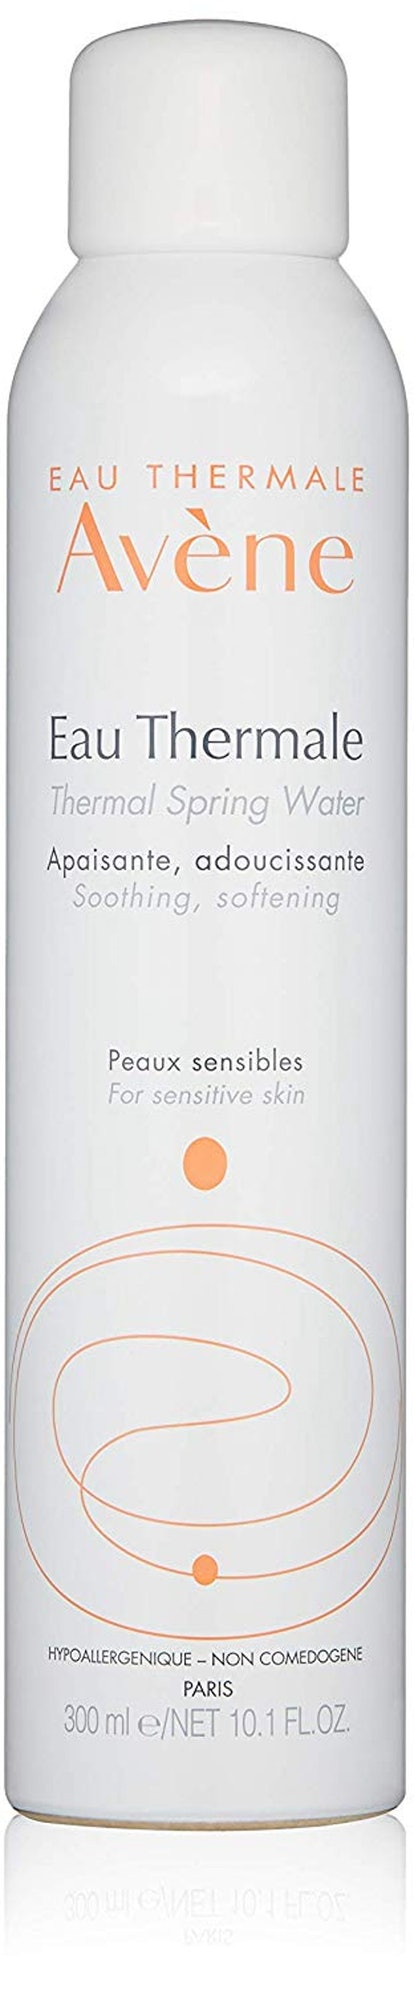 Avène Eau Thermale Spring Water